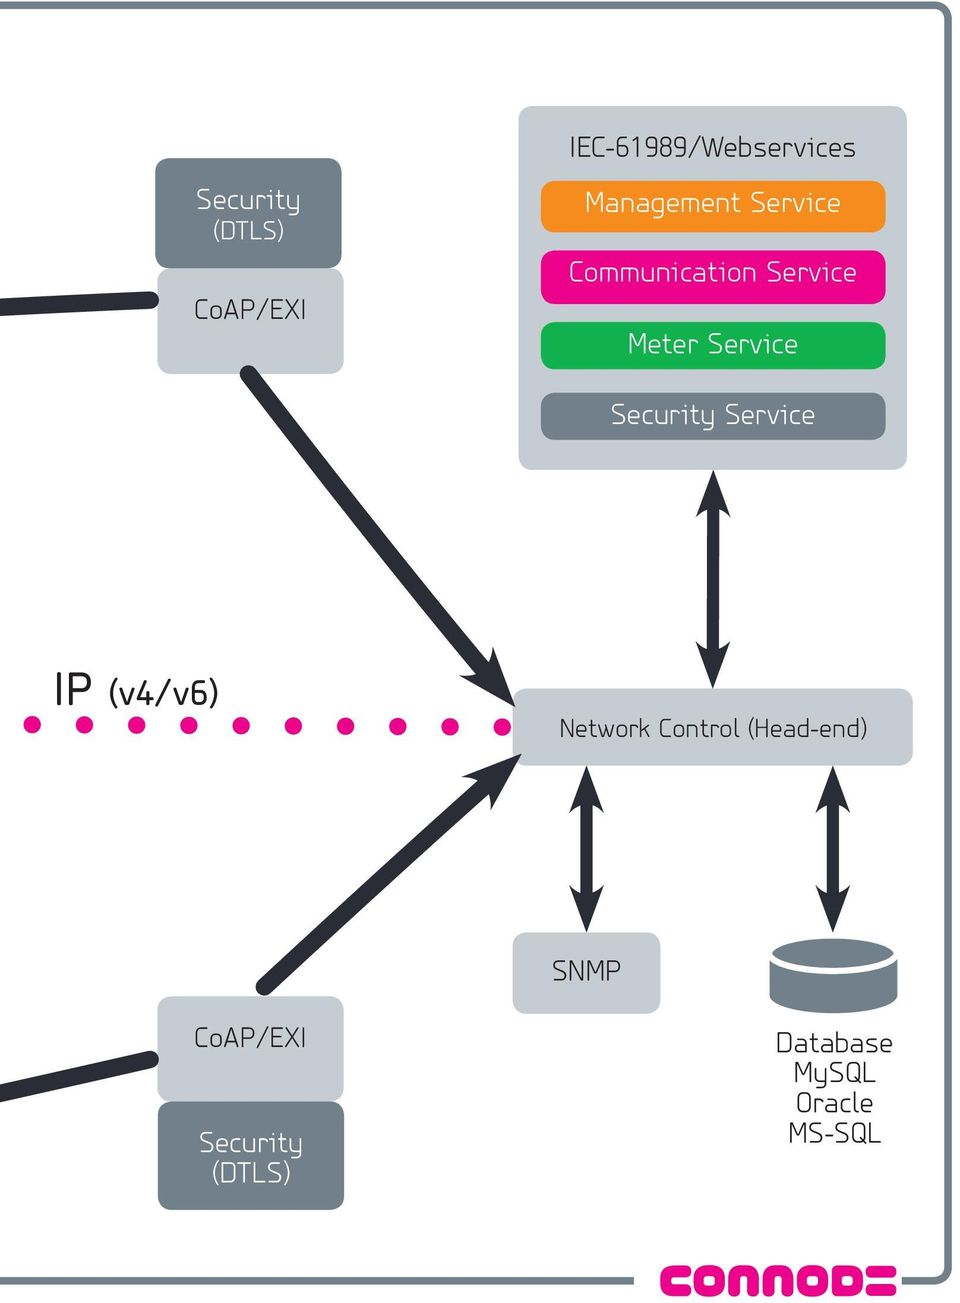 Service Security Service IP (v4/v6) Network Control